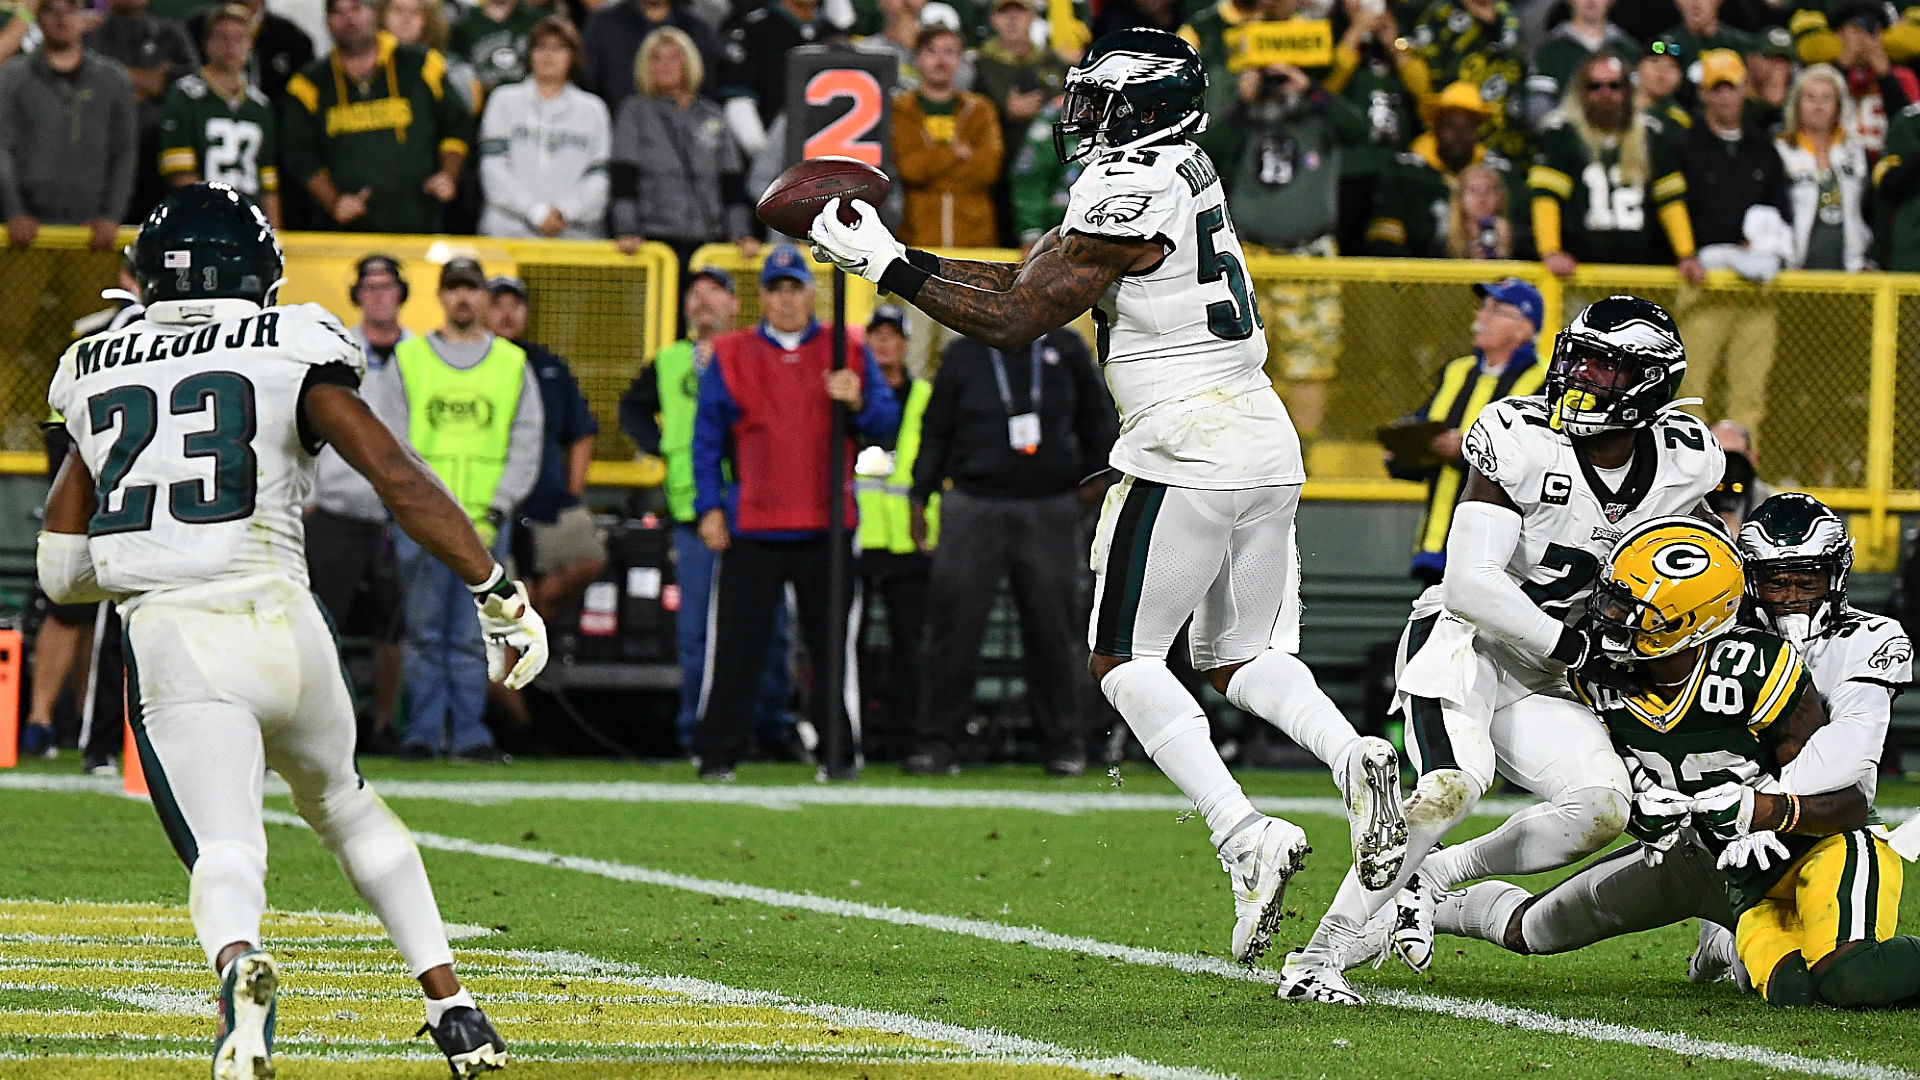 Eagles Vs Packers Final Score Late Int At Goal Line Seals Philly S Thursday Night Win In Green Bay Sporting News